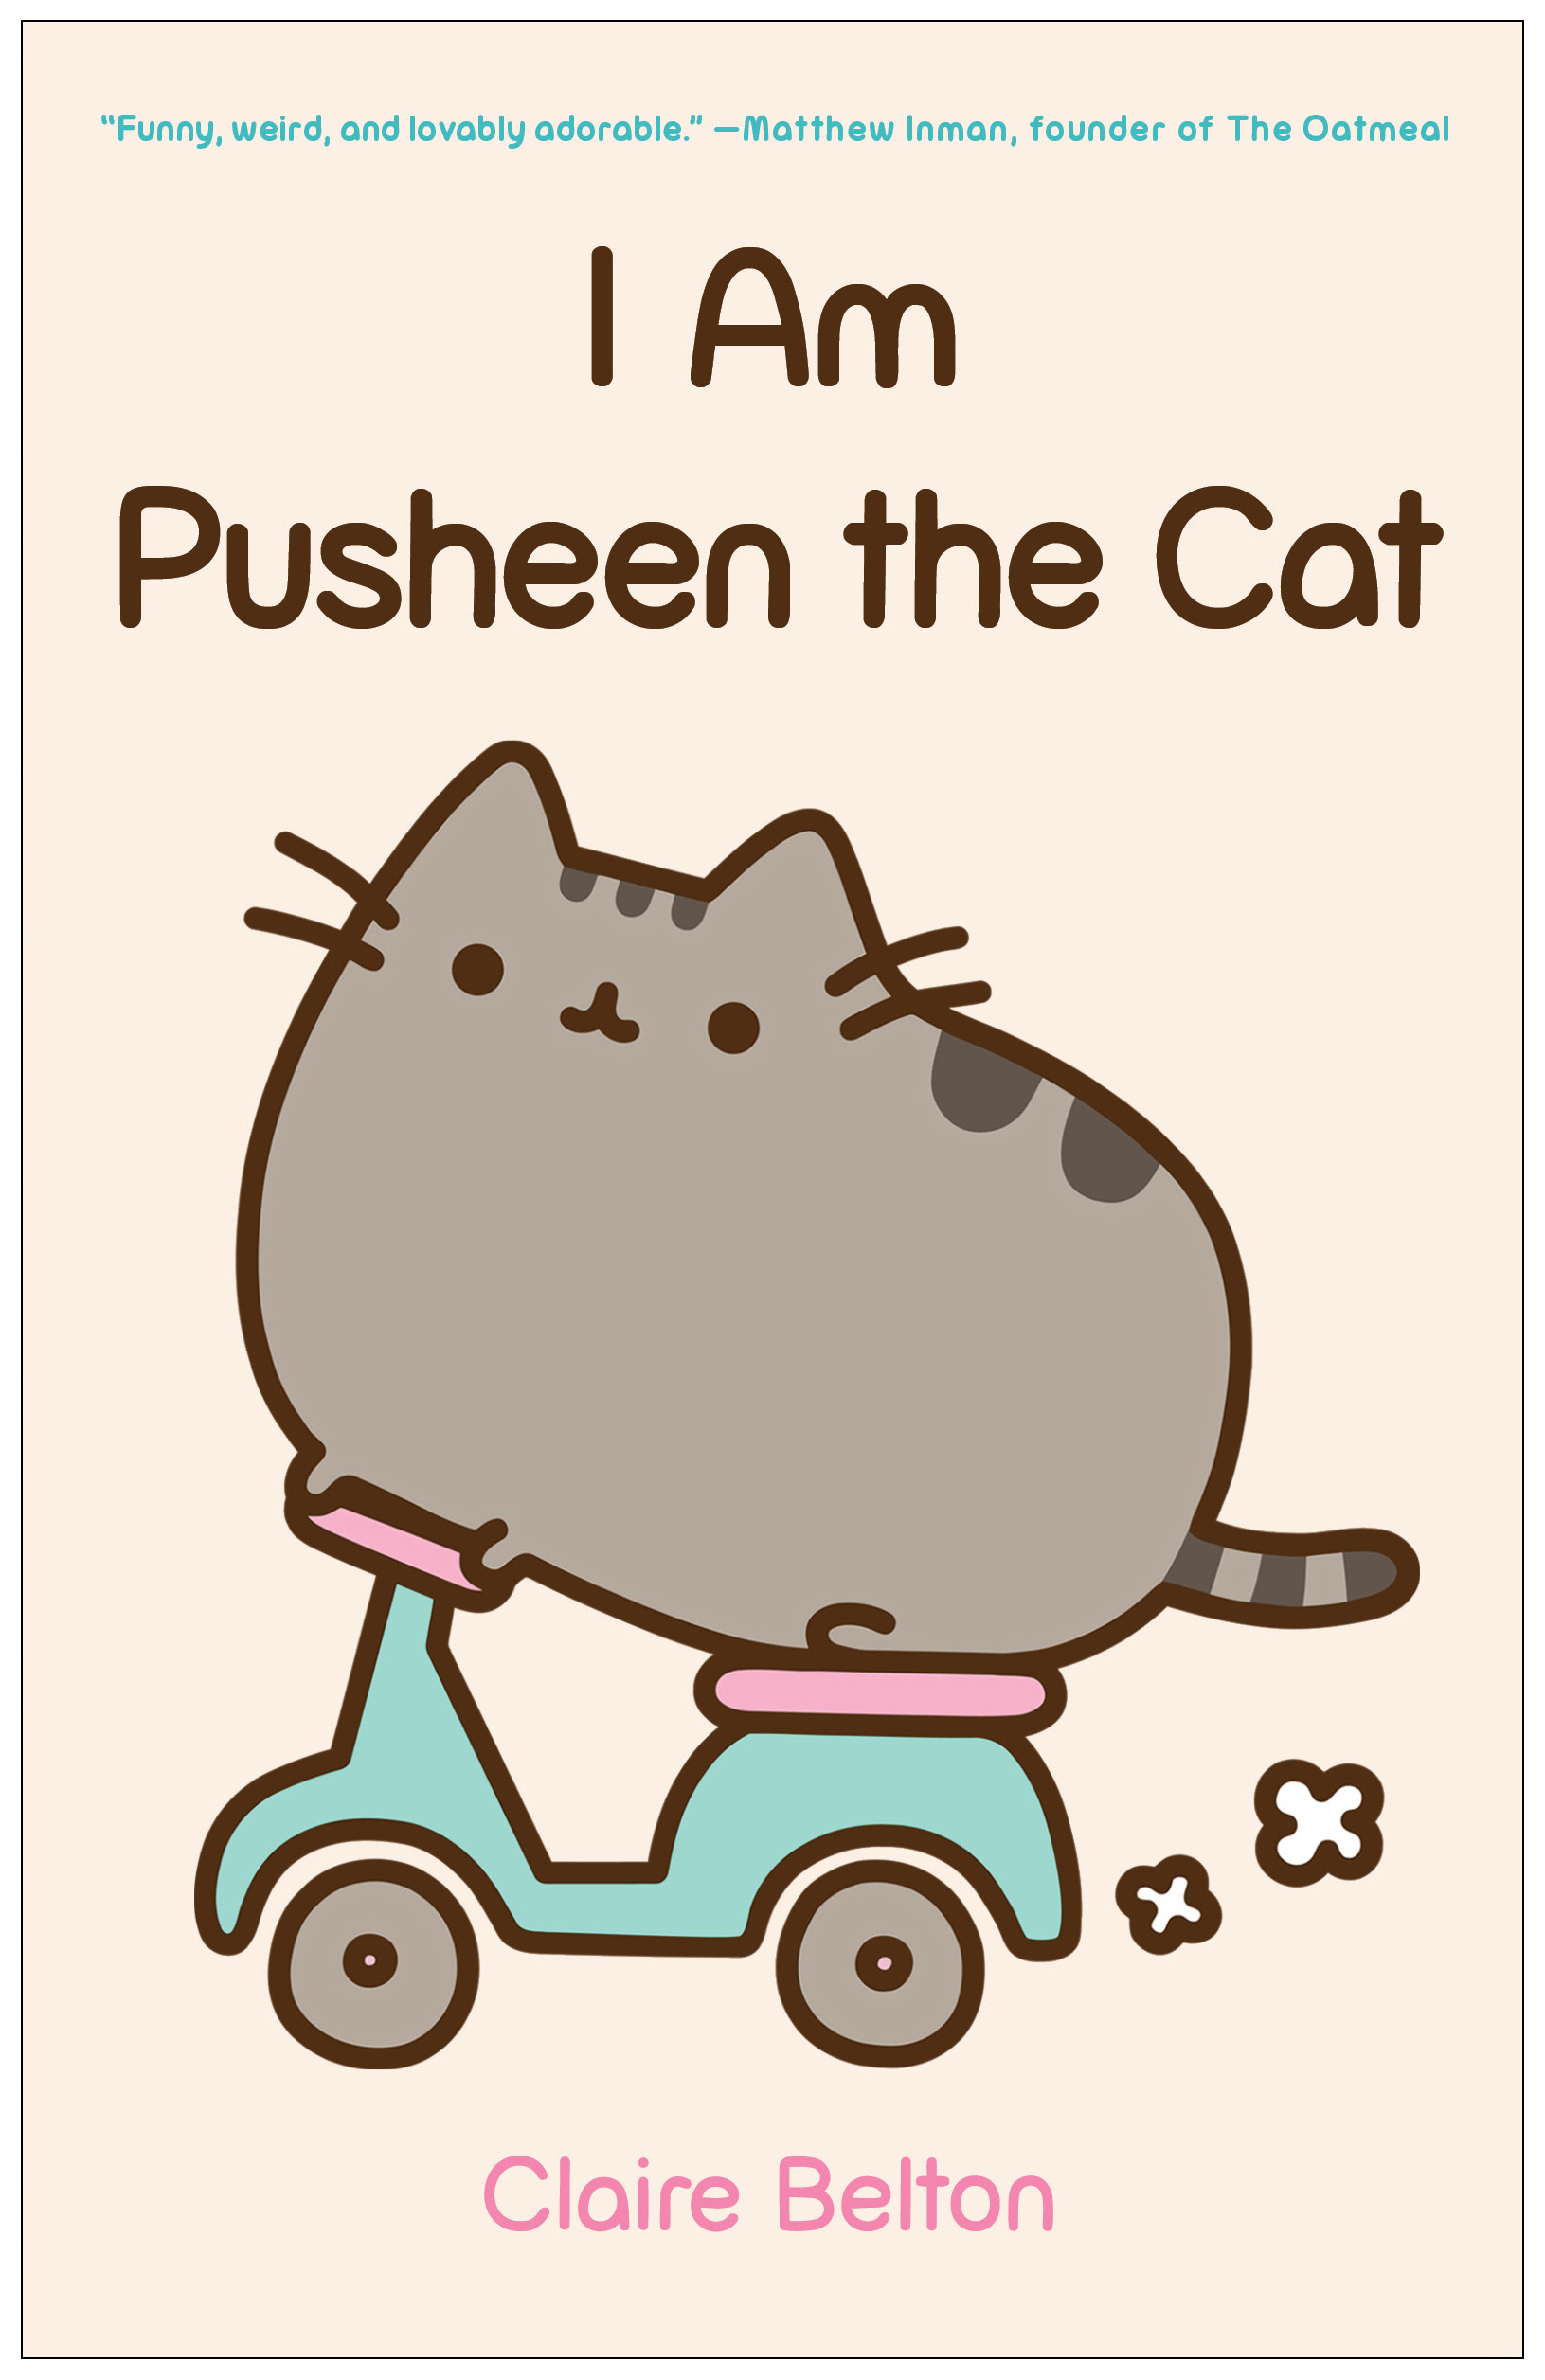 Am Pusheen the Cat Book by Claire Belton Official Publisher Page 1631x2513